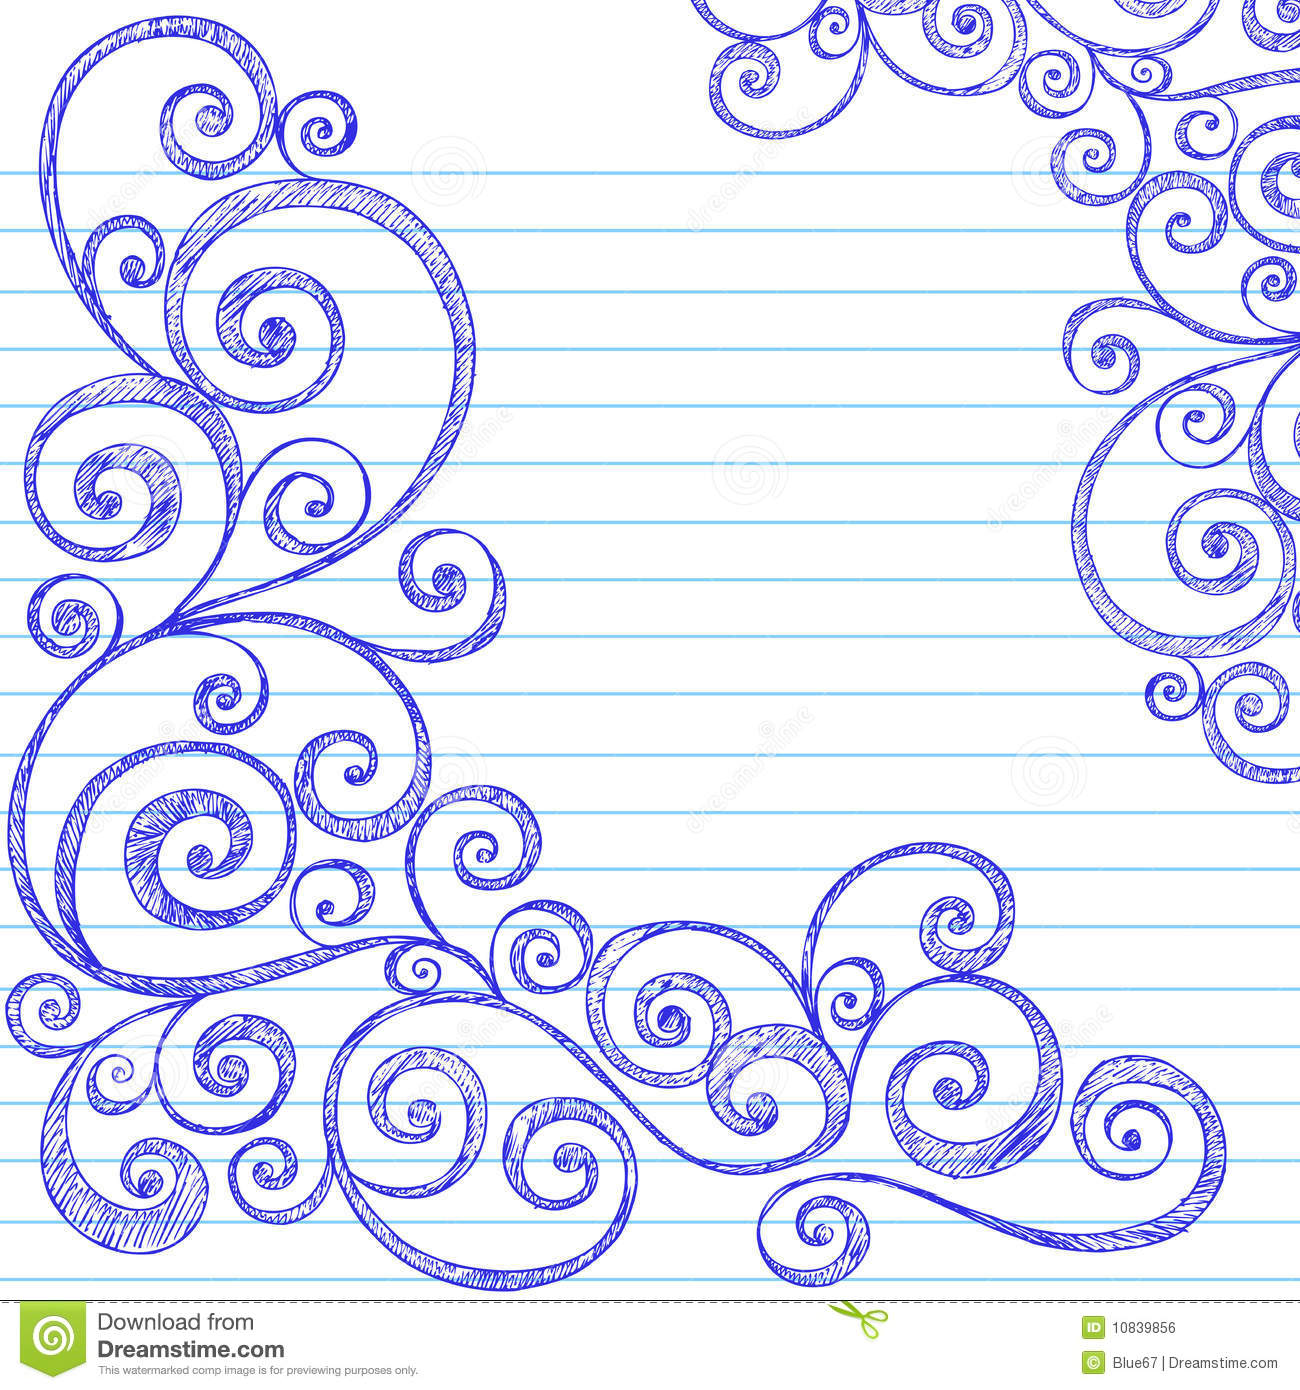 Drawn paper easy Designs Cute Designs Border Wallpapers